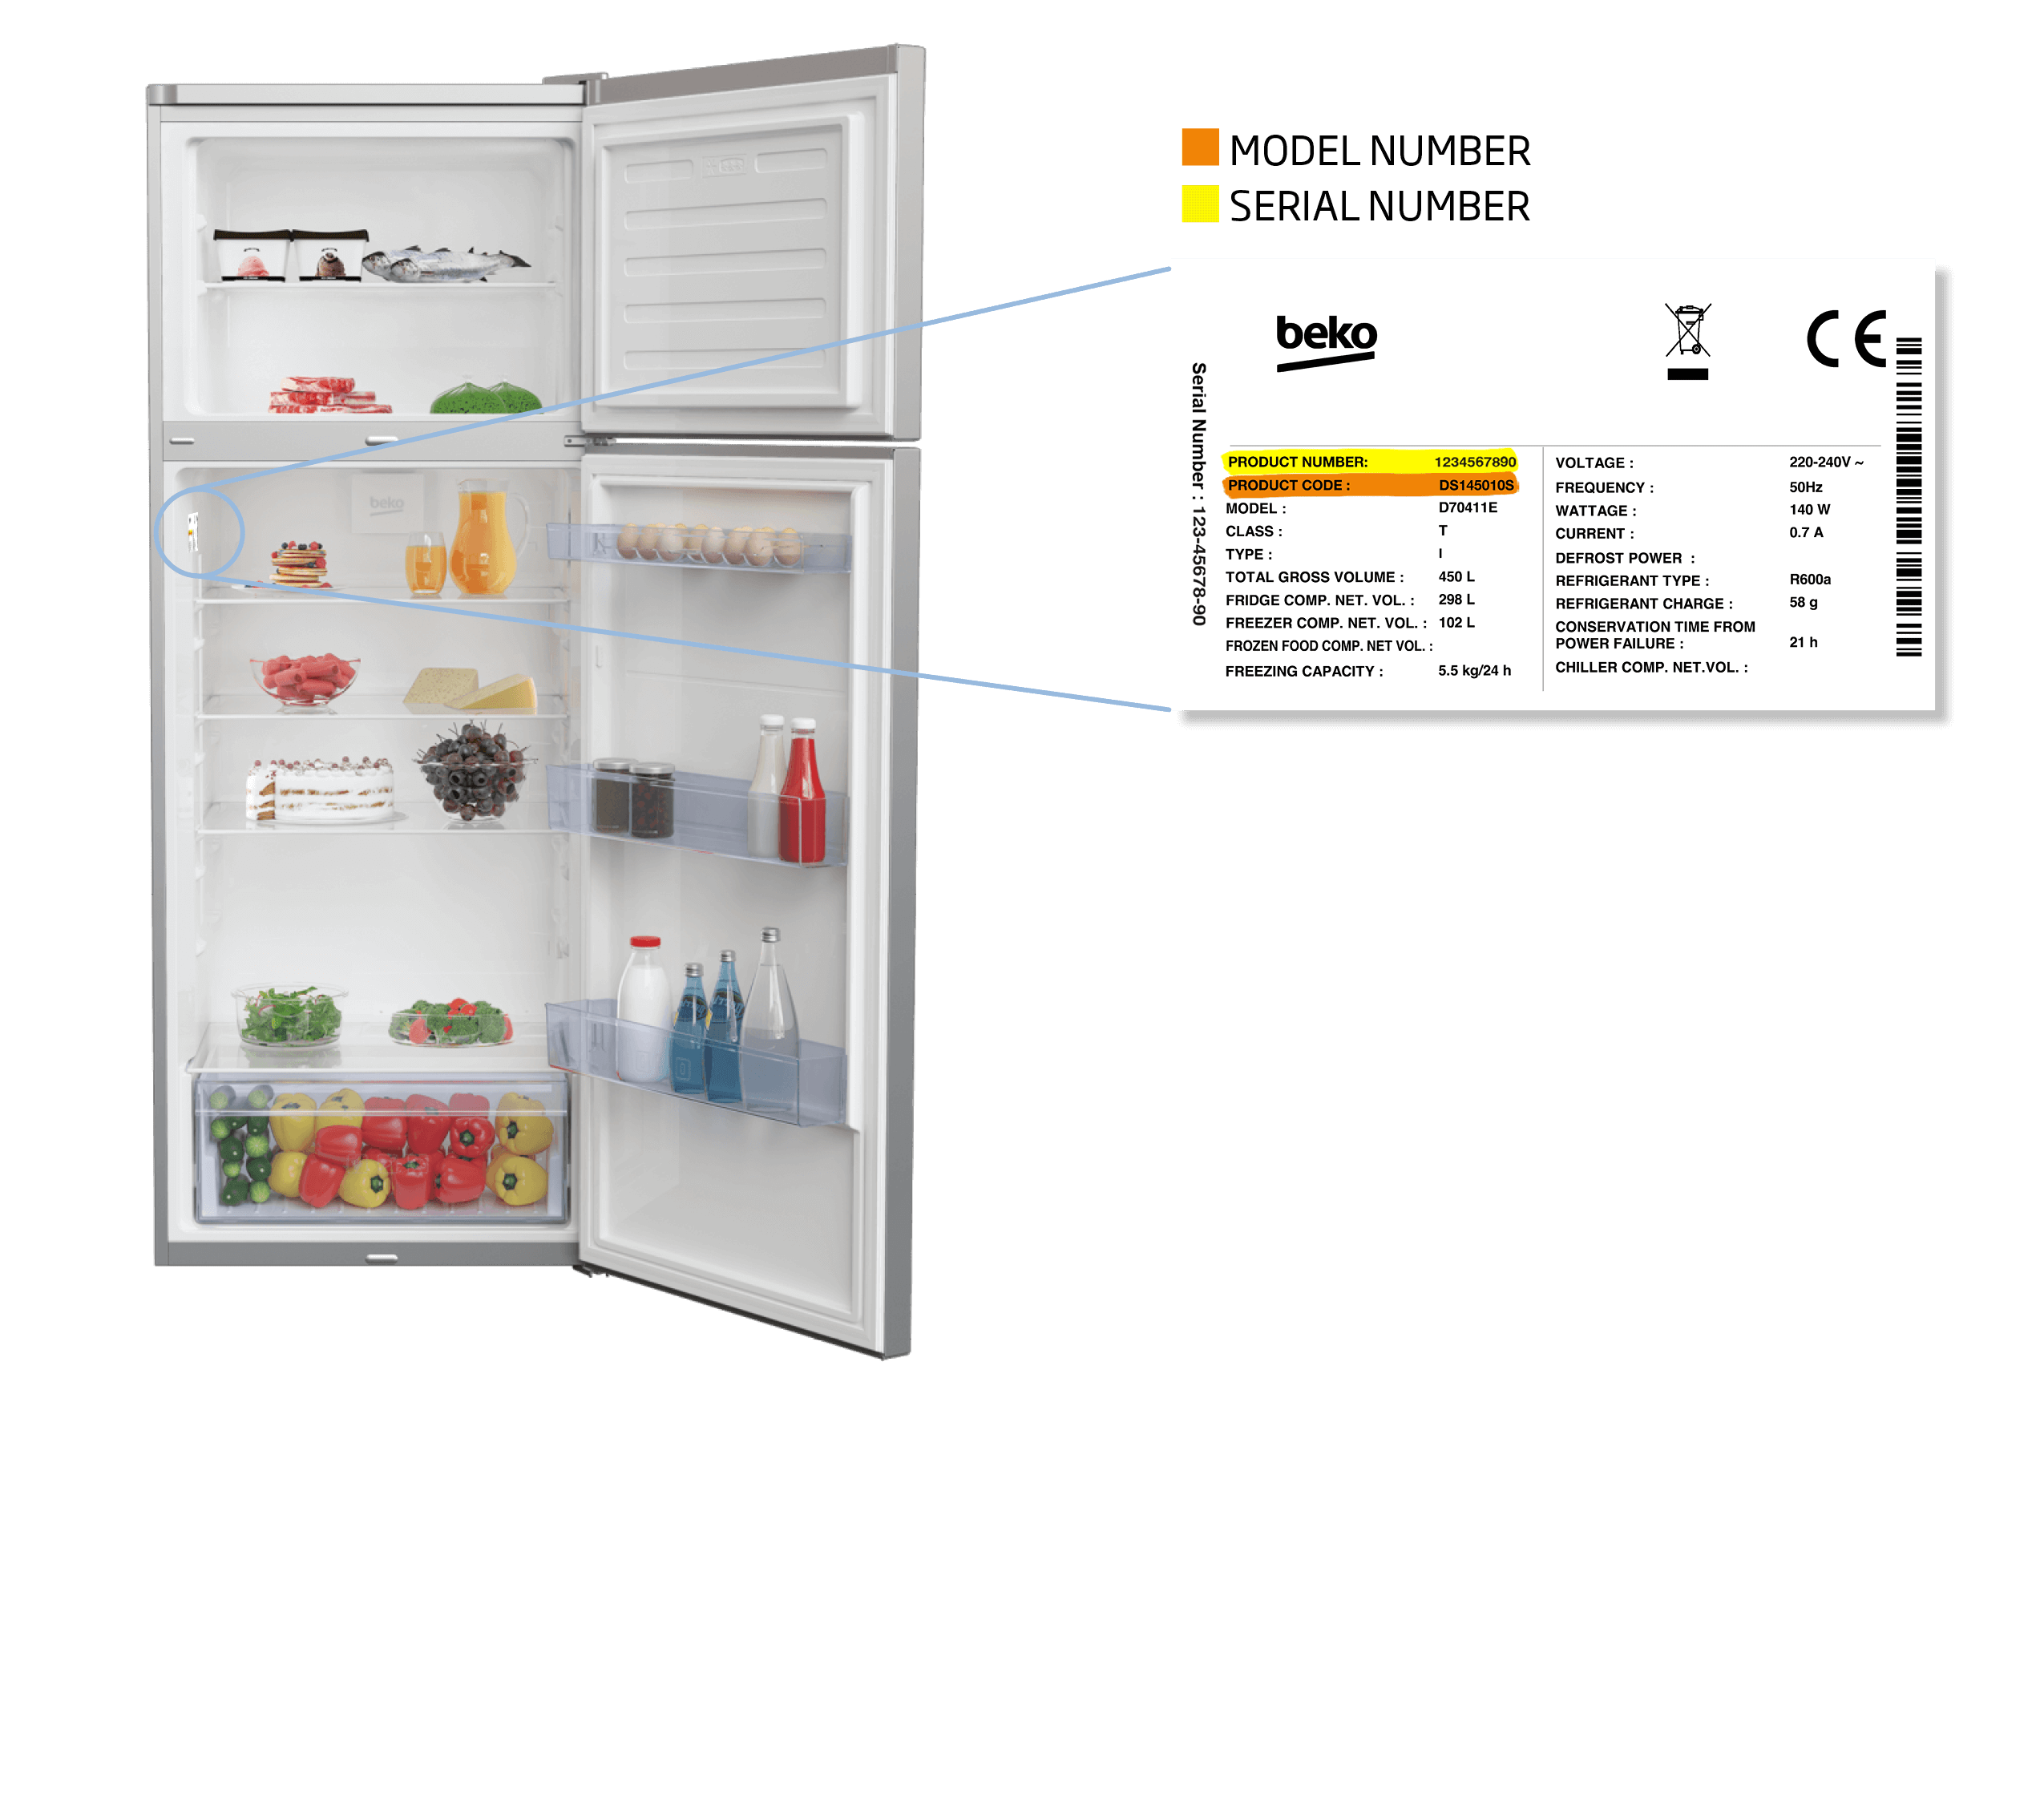 freezer top fridge freezer model number